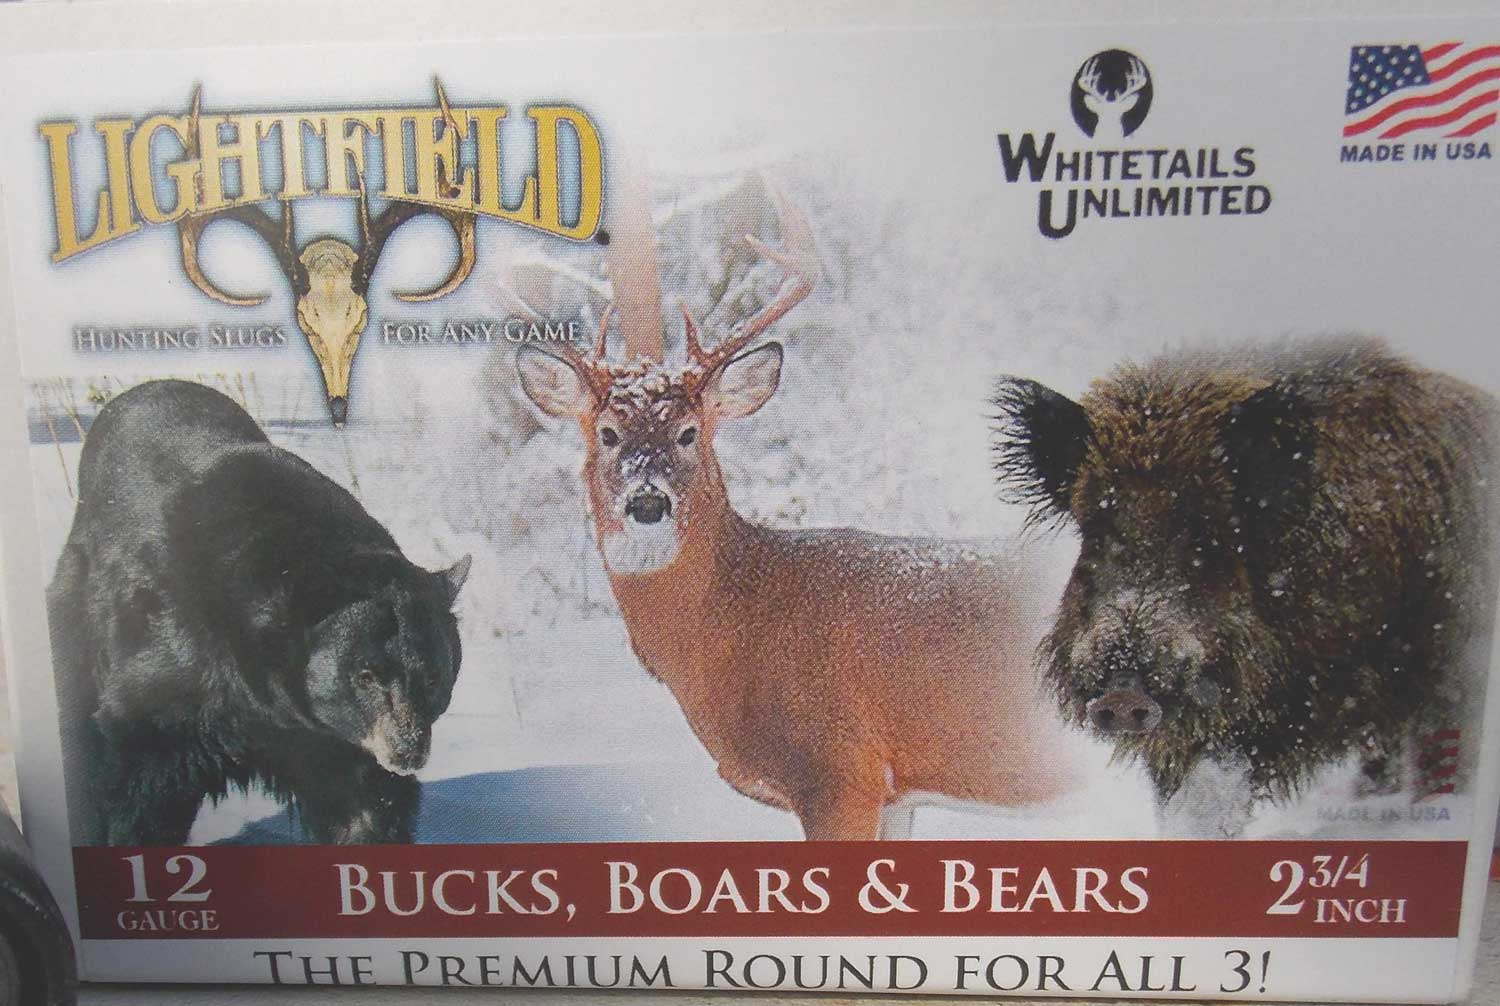 Lightfield Bucks, Boars & Bears shotgun shell box